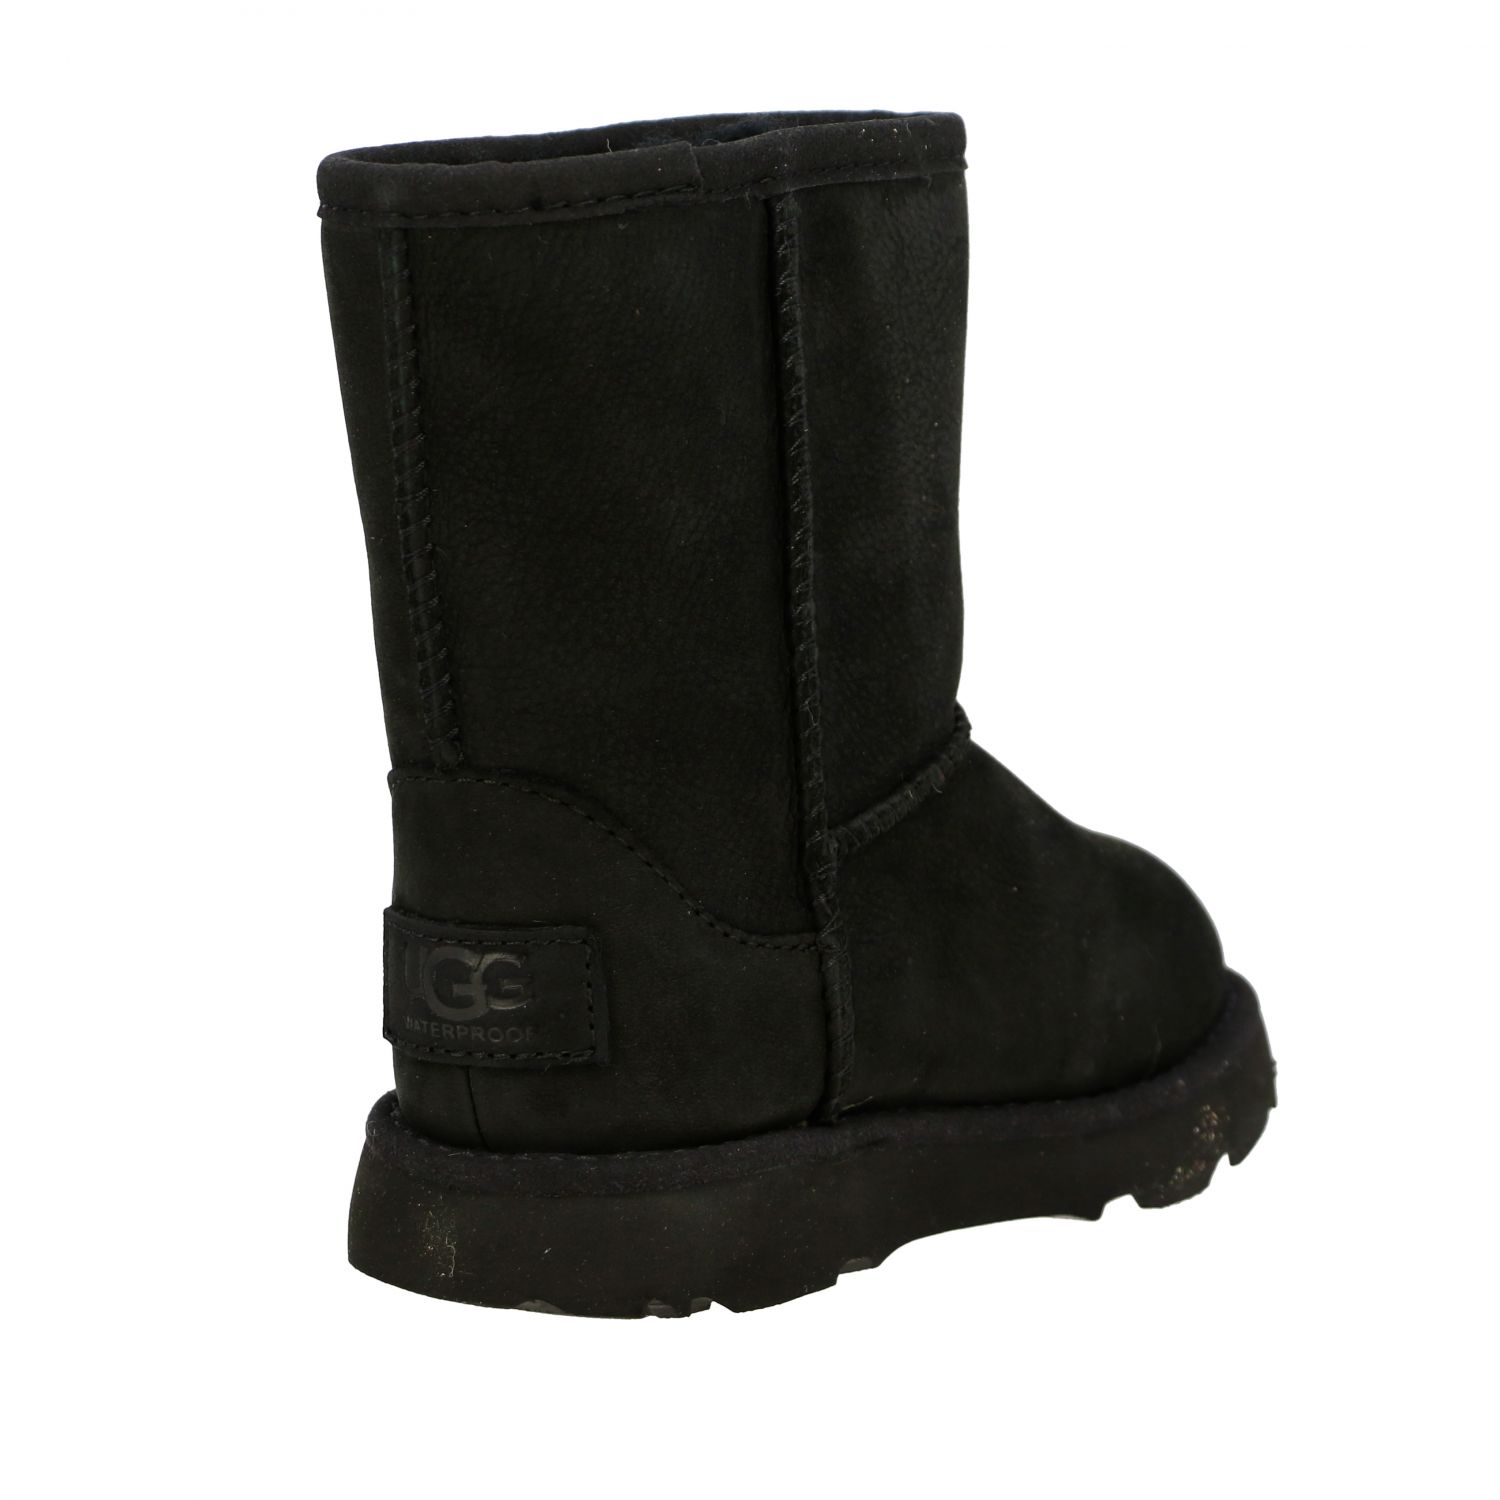 Shoes kids Ugg Australia black 5